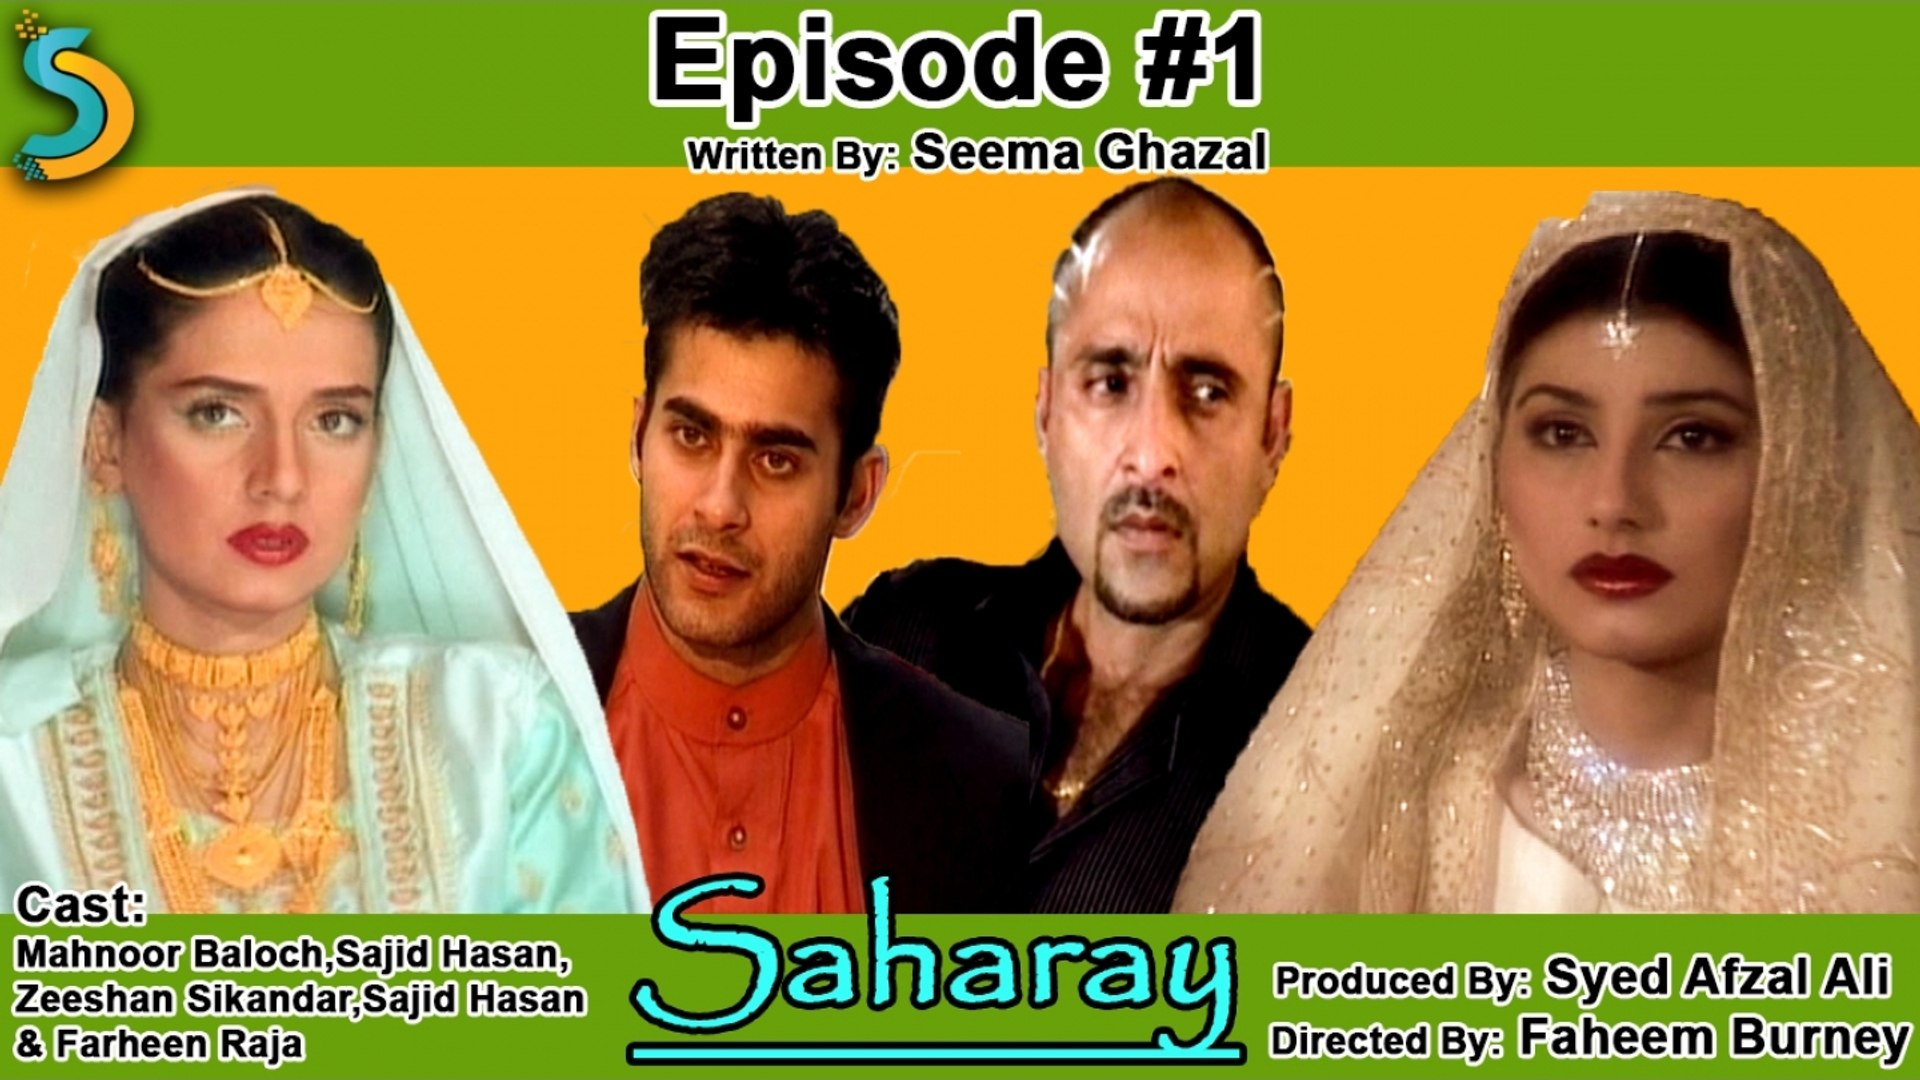 Syed Afzal Ali Ft. Sajid Hasan - Saharay Drama Serial | Episode #1